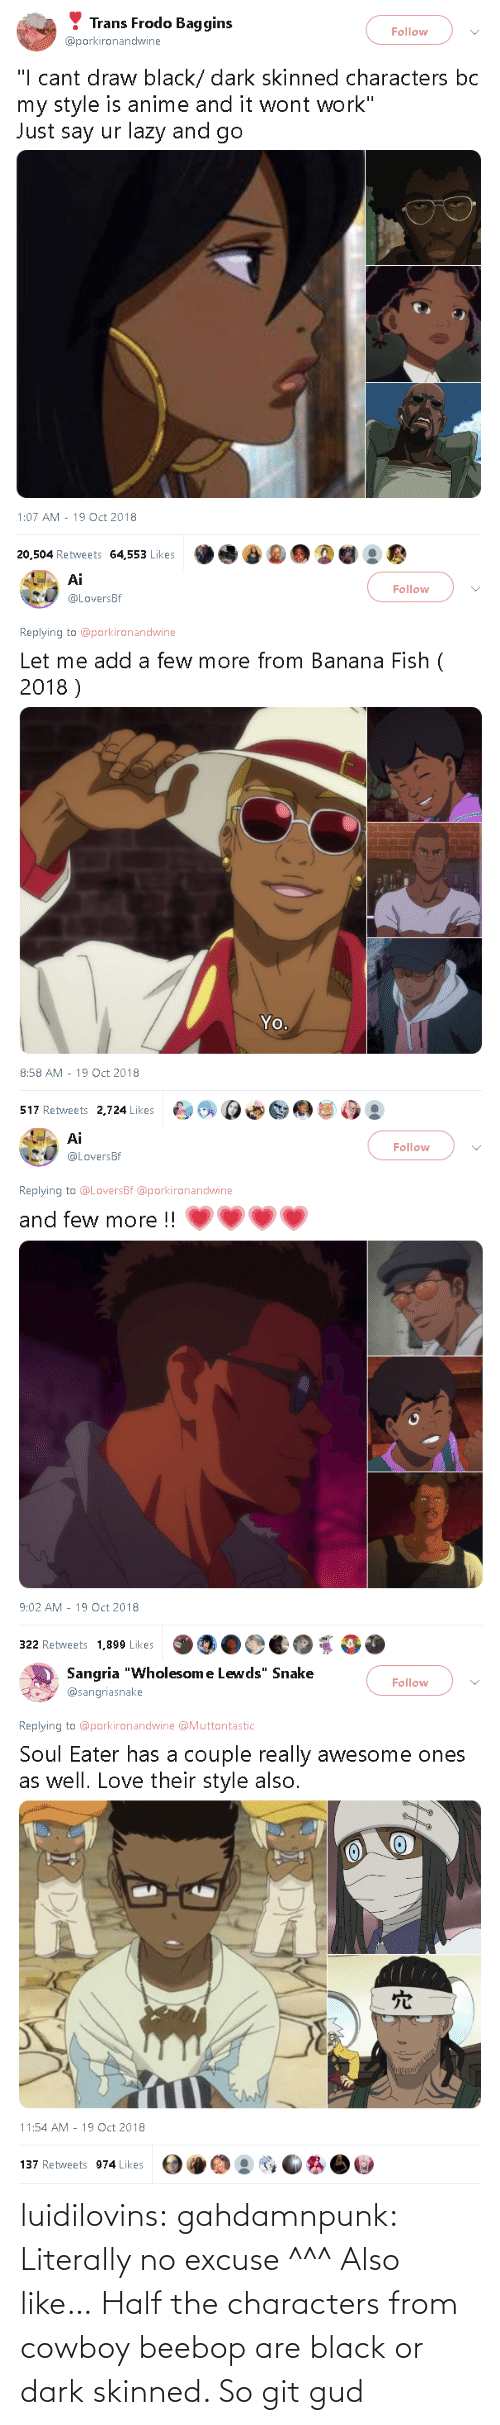 Tumblr, Black, and Blog: luidilovins: gahdamnpunk: Literally no excuse ^^^  Also like… Half the characters from cowboy beebop are black or dark skinned.        So git gud